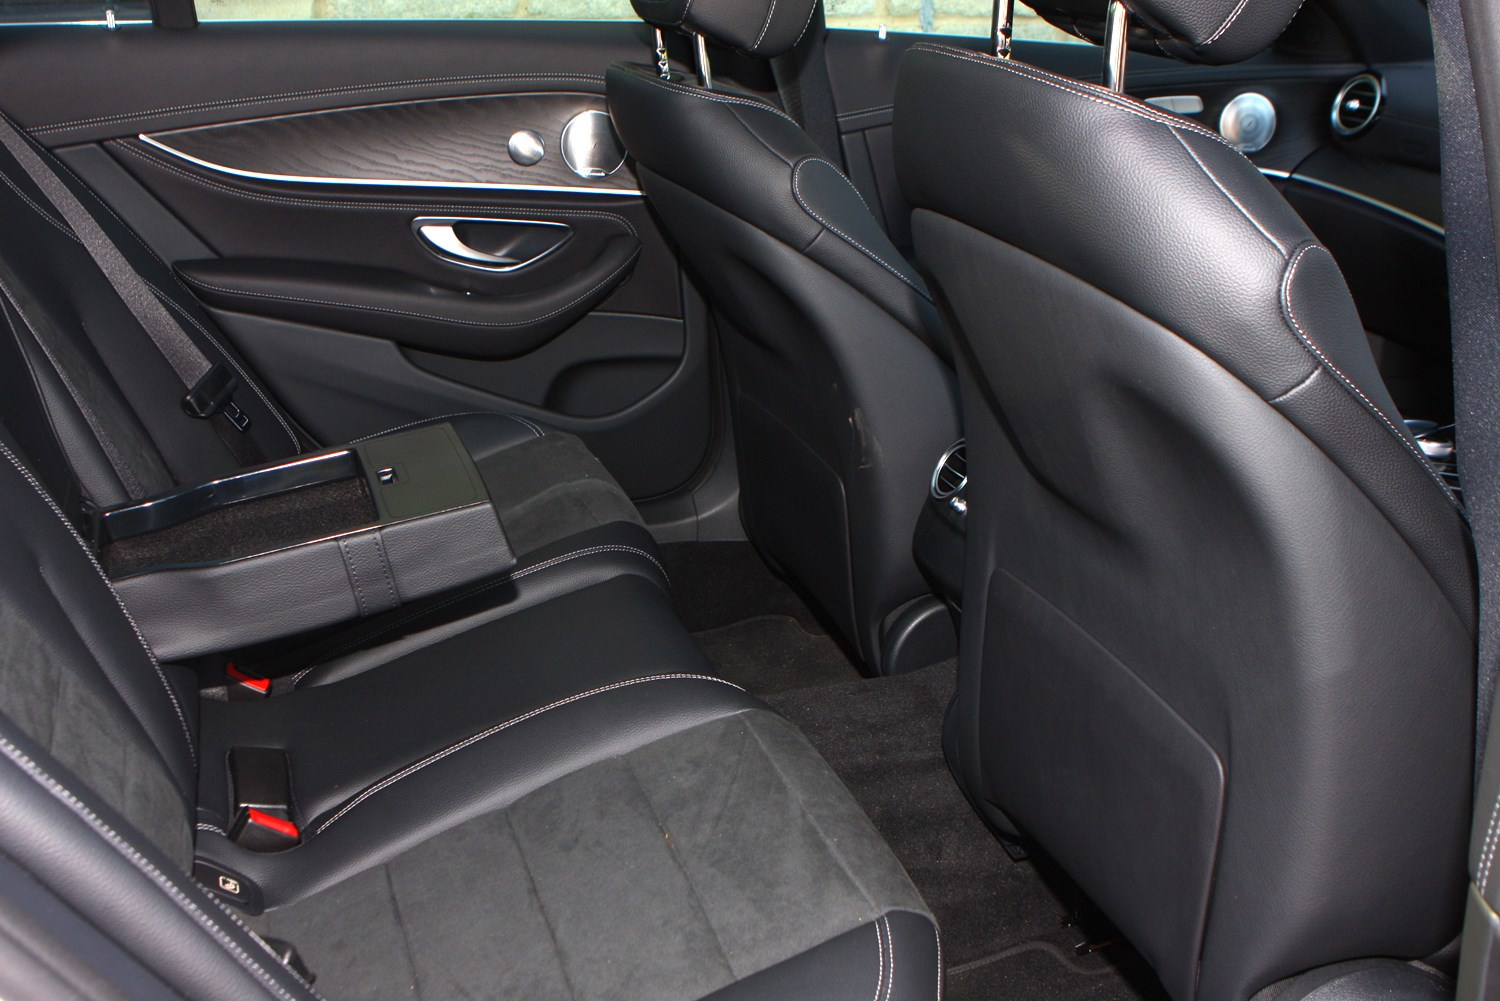 Mercedes benz e class saloon review 2016 parkers for Mercedes benz upholstery